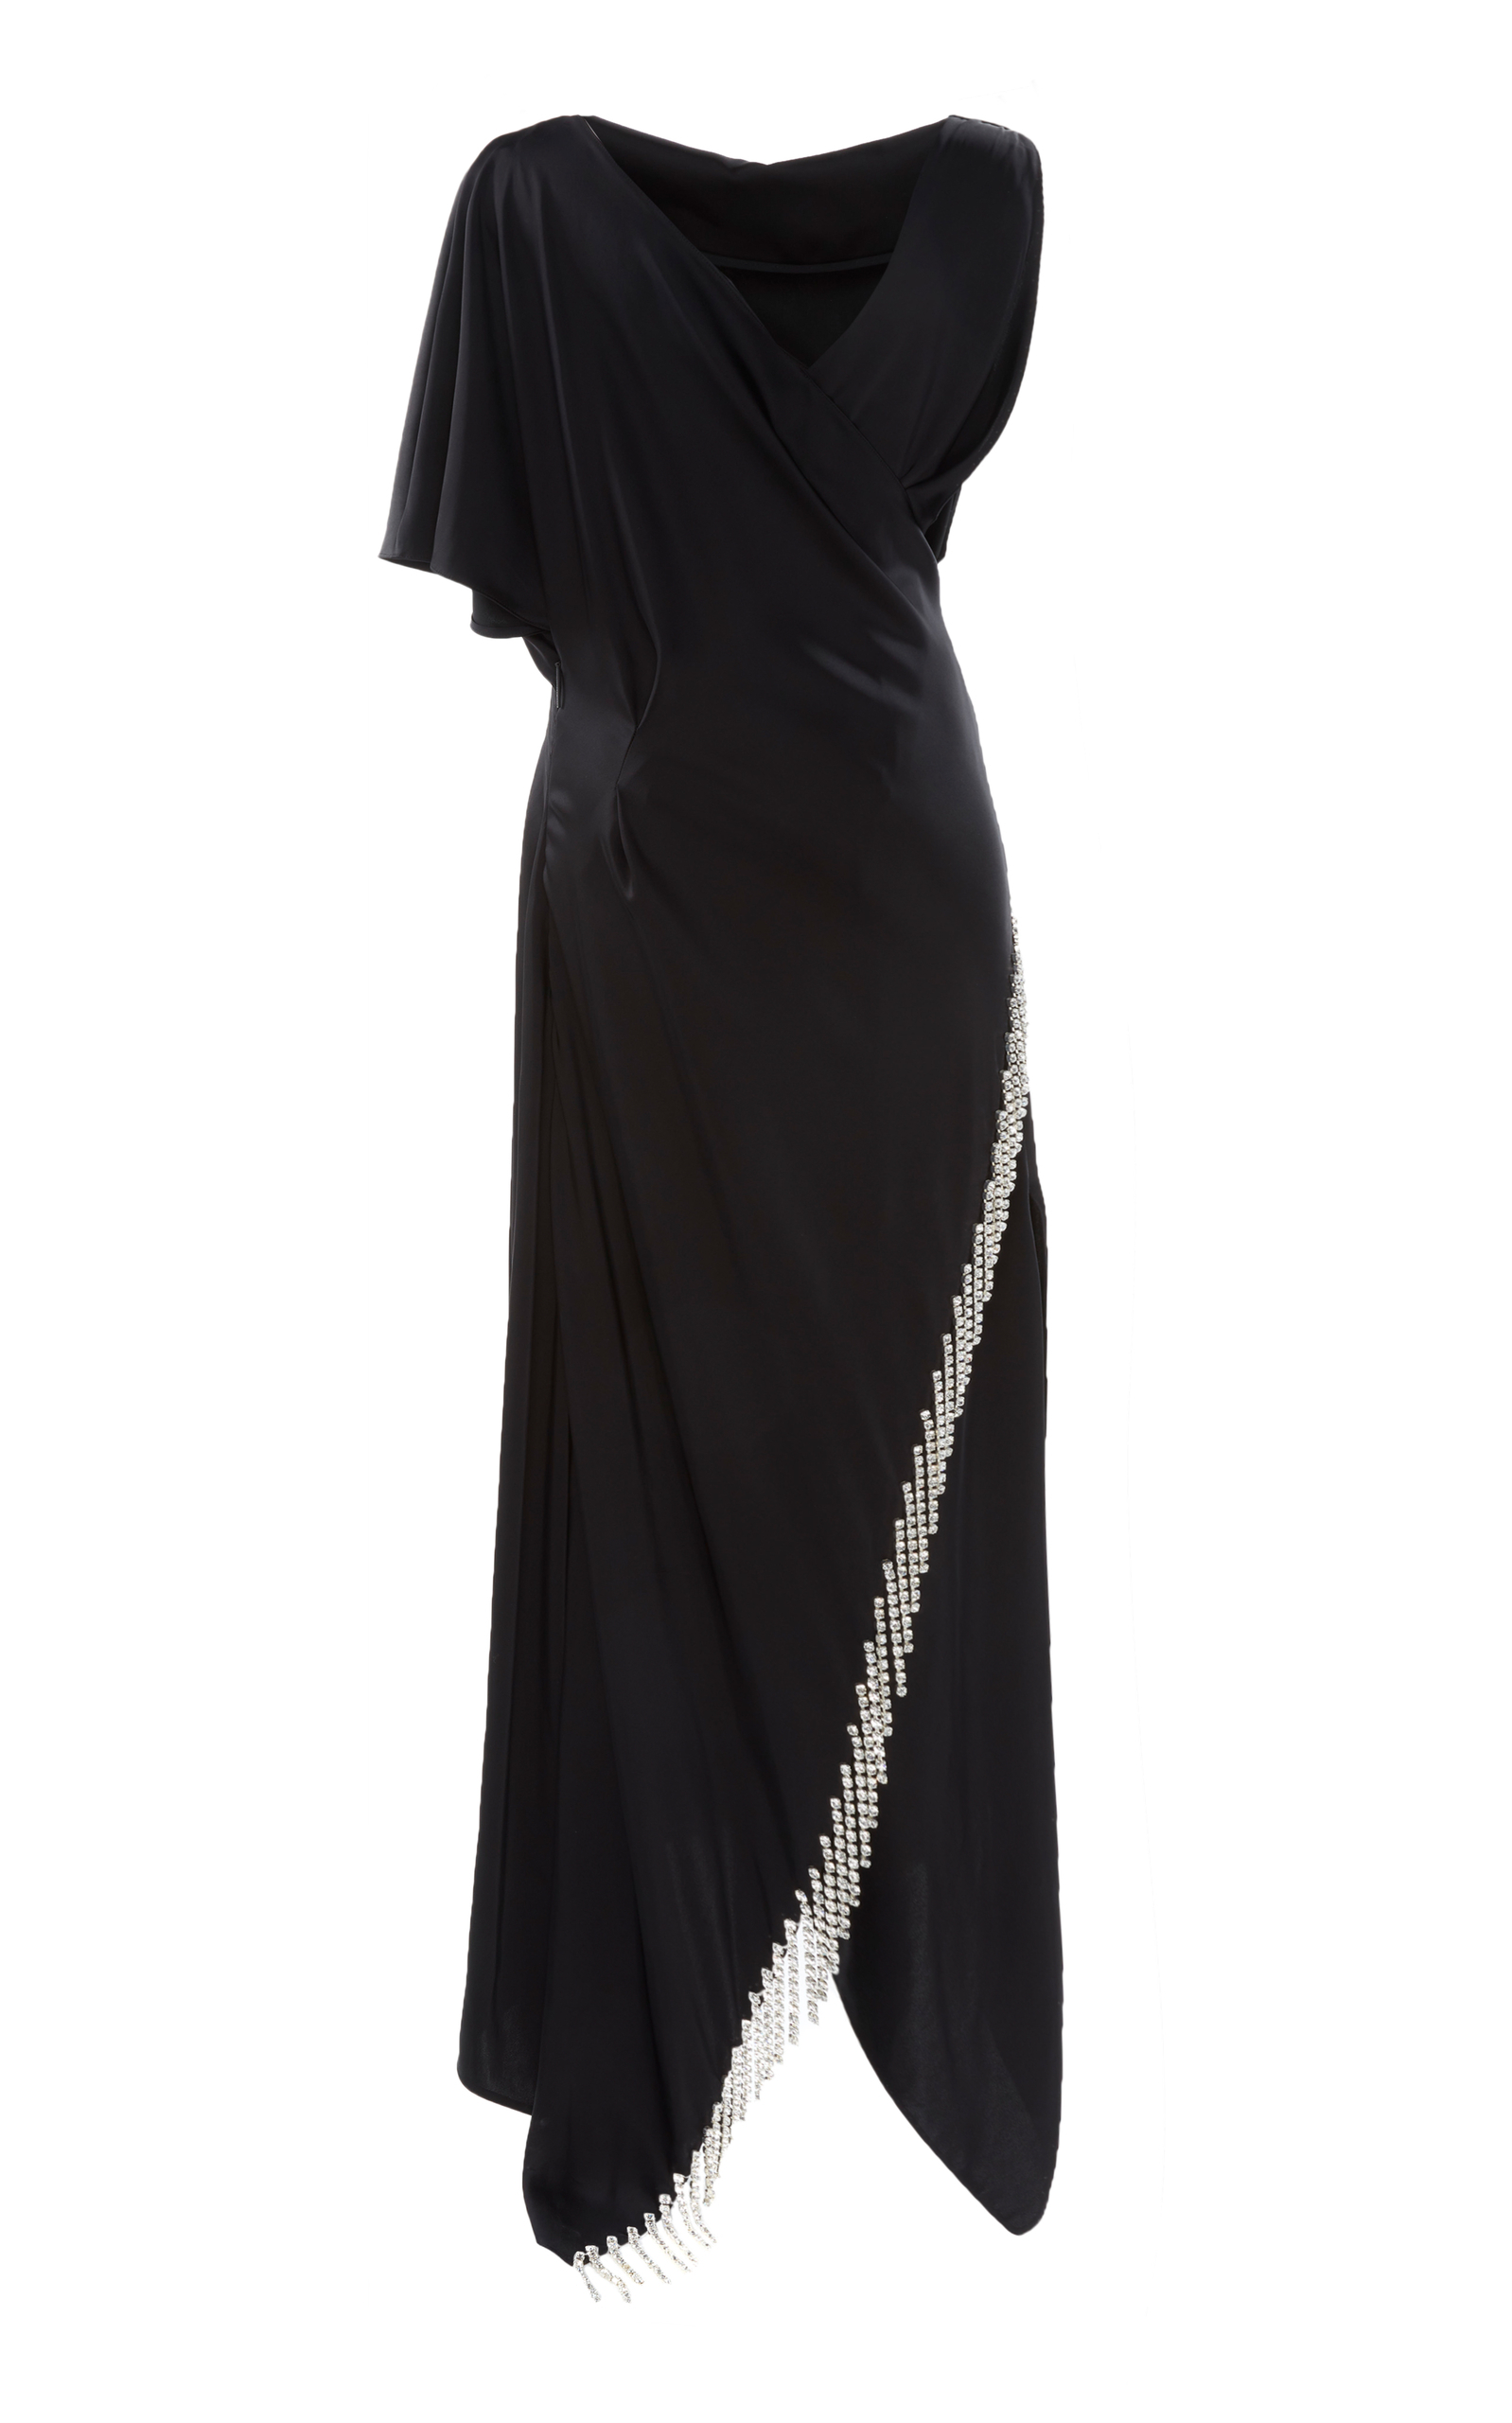 crystal satin dress - Black Christopher Kane q8W9Htun